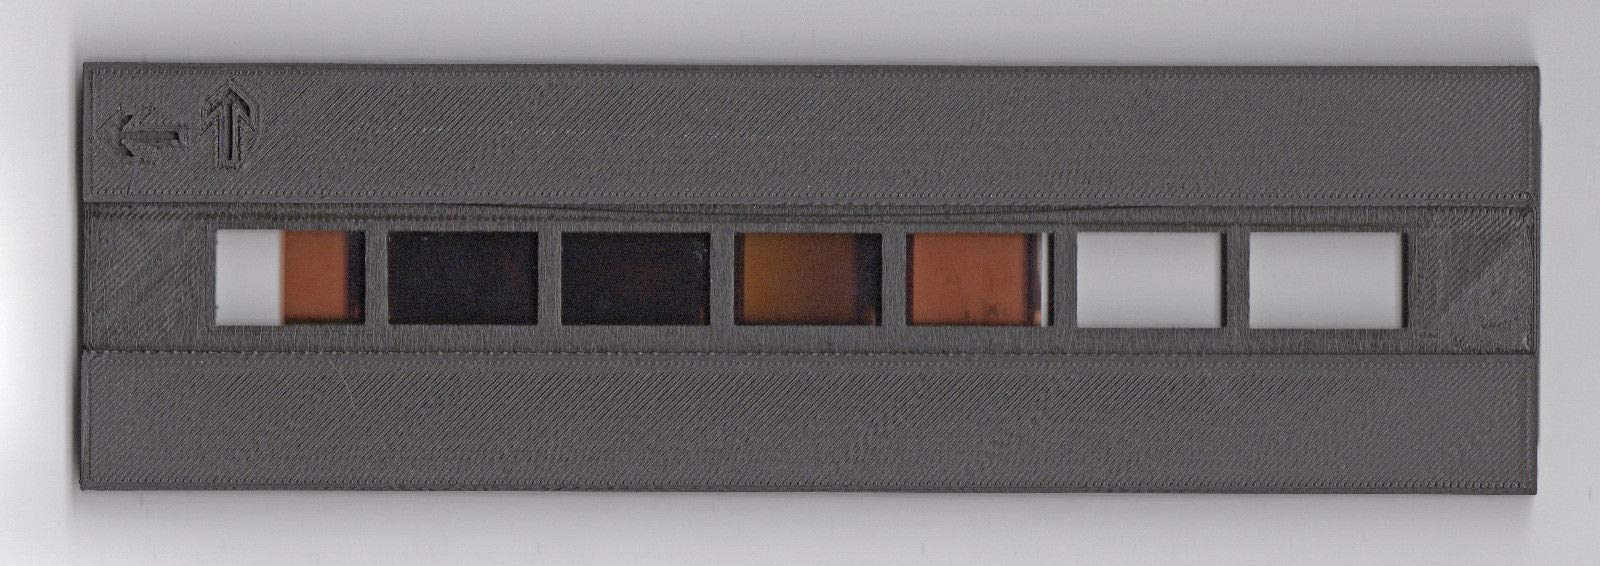 Negative Solutions Film Holders 110 Adapter Compatible w/ION, JUMBL, Wolverine, Digitnow! scanners